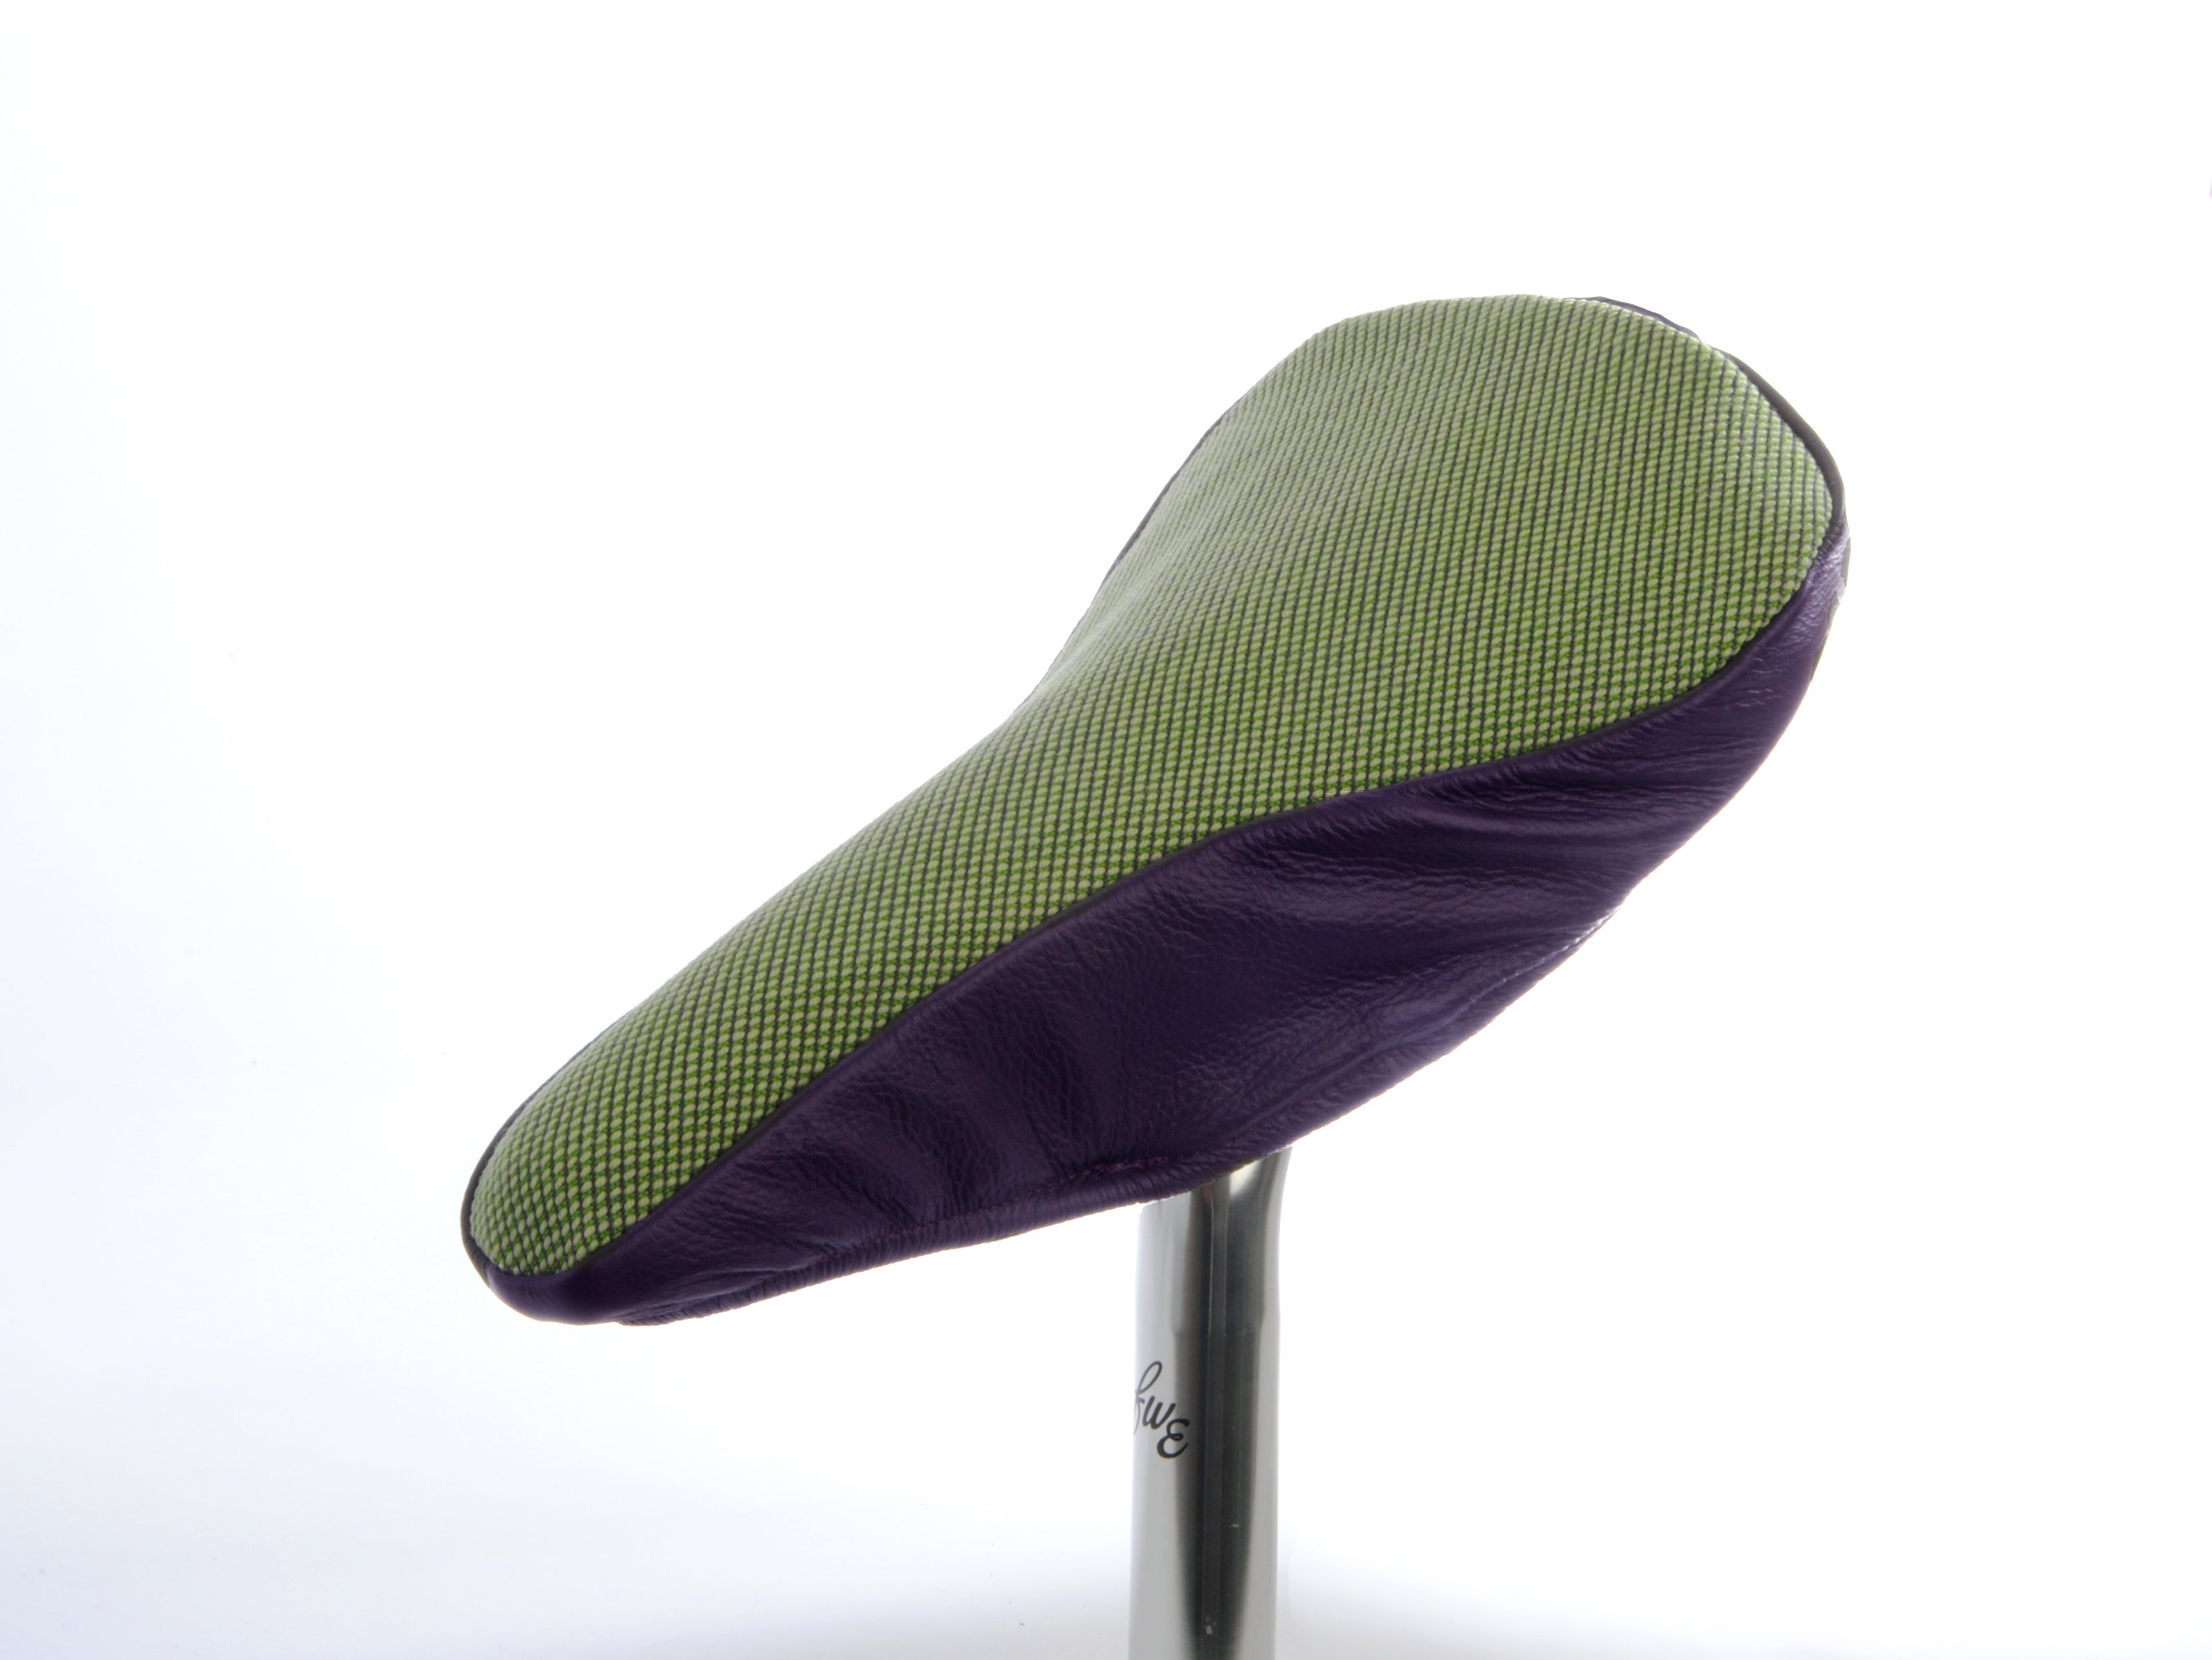 Aubergine II Saddle Cover - Upcycled Leather